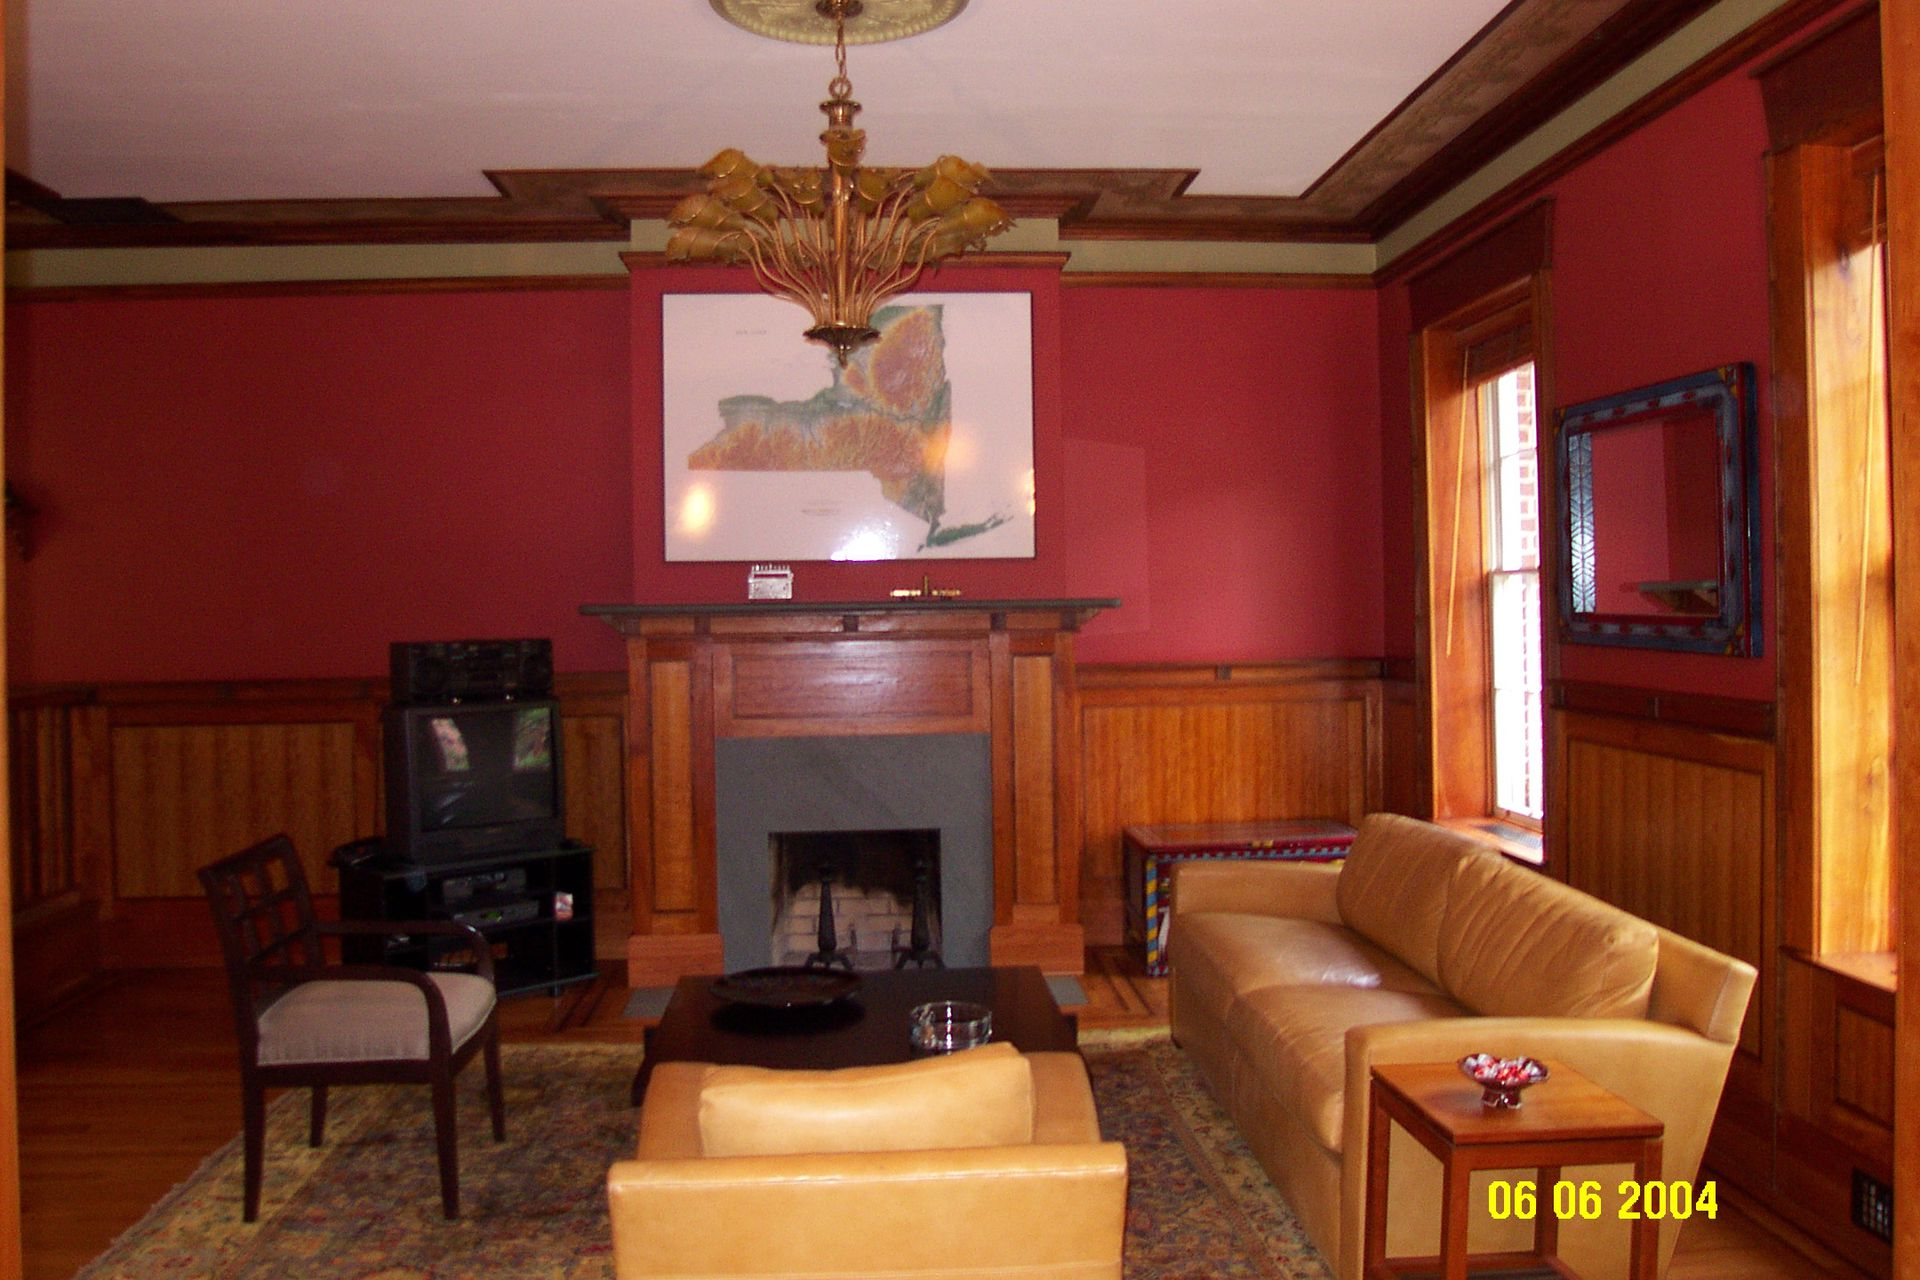 Luxurious Brooklyn Brownstone: 4 story, 5 bdrm, 4.5 bath townhouse ...